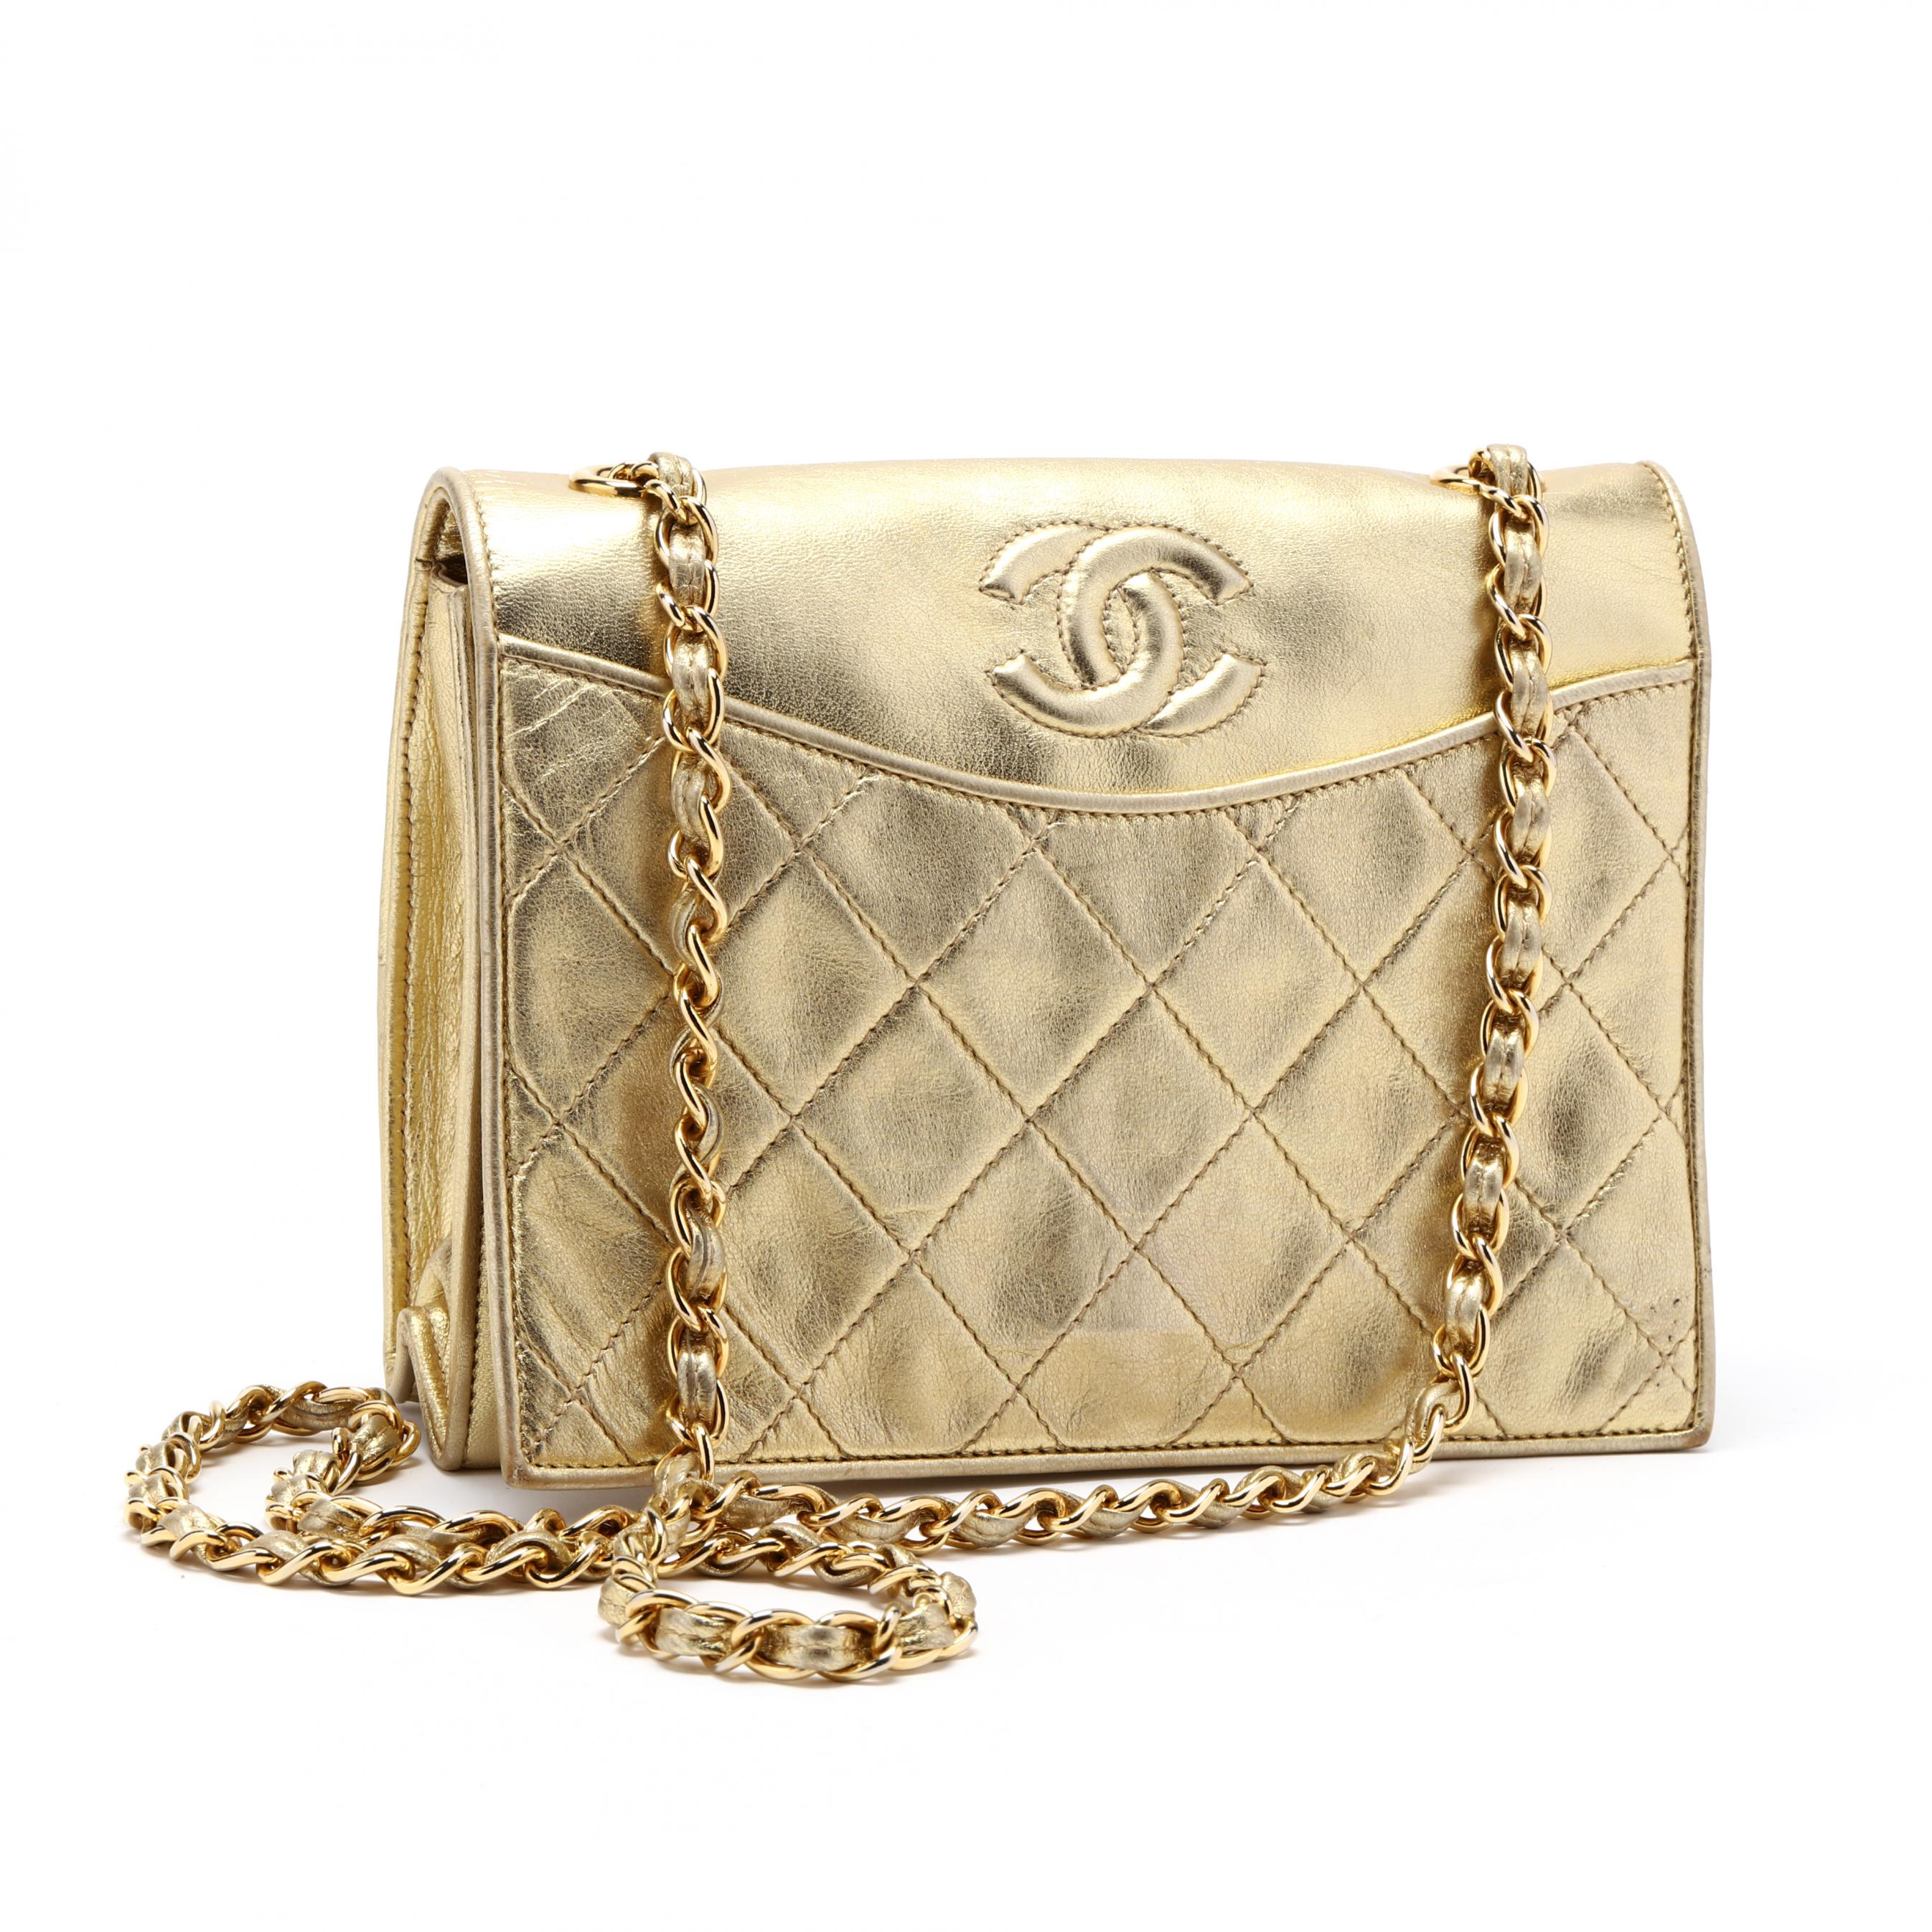 vintage-metallic-gold-flap-shoulder-bag-chanel